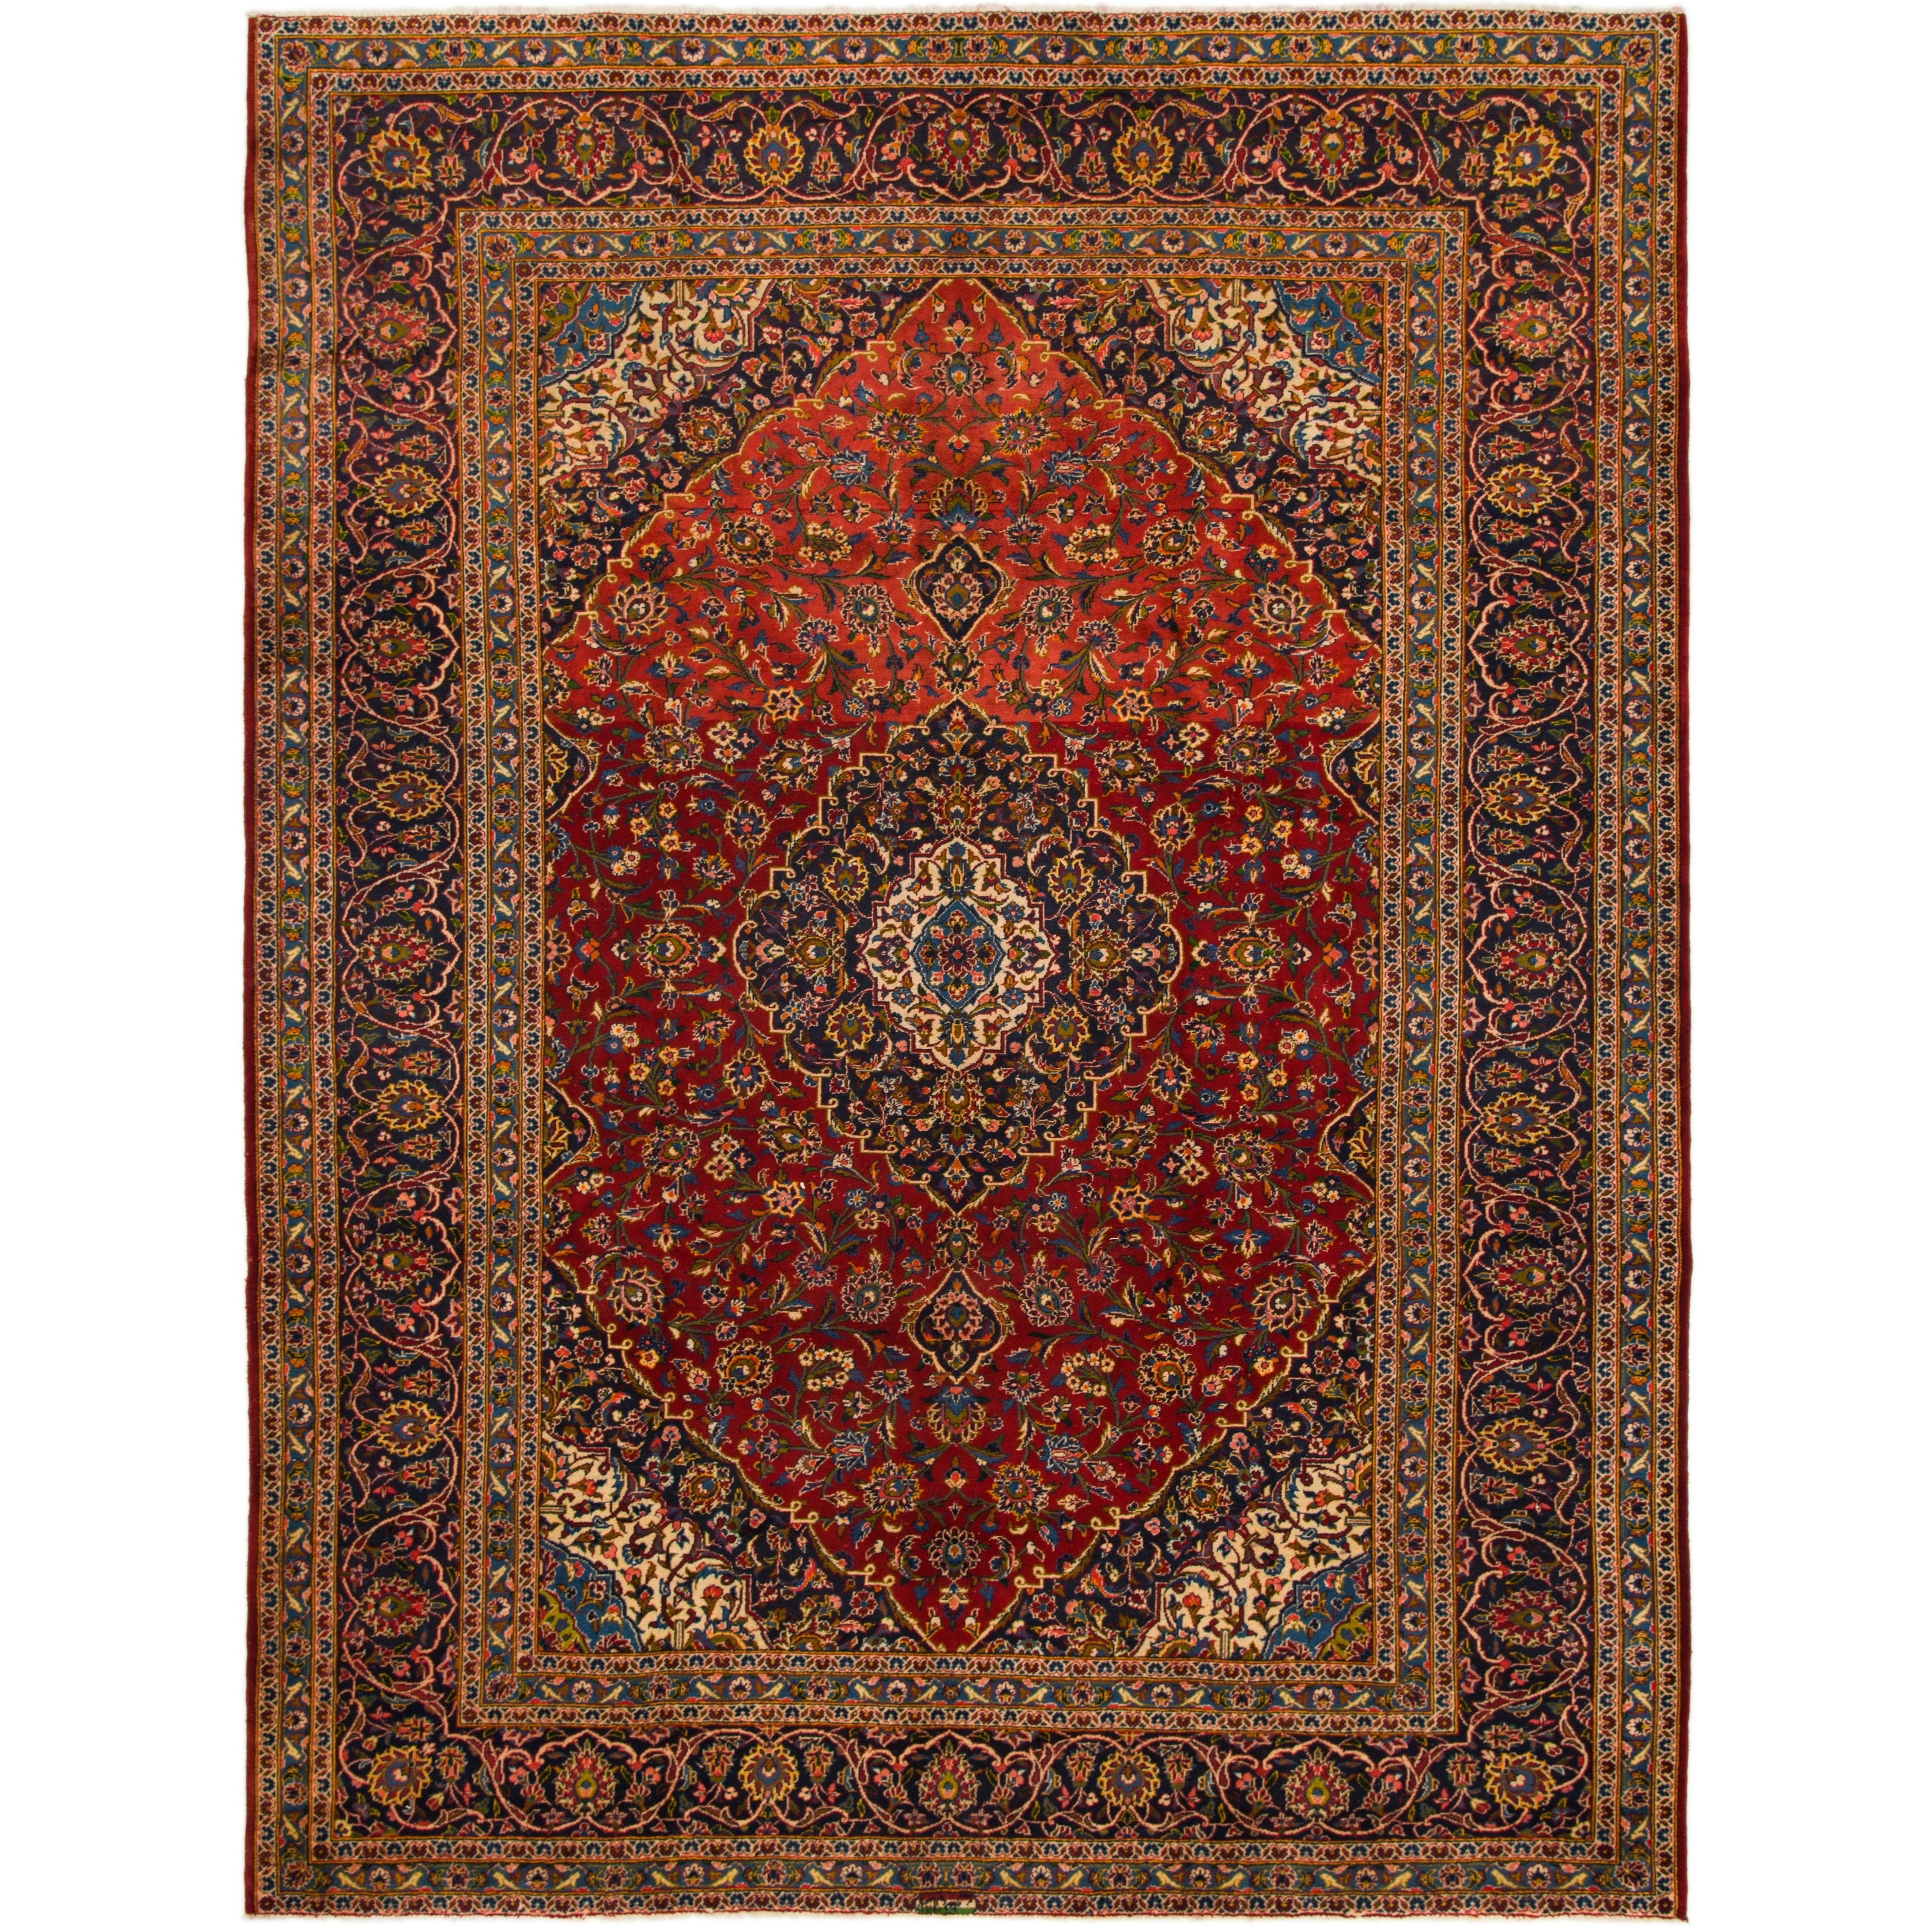 Hand Knotted Kashan Semi Antique Wool Area Rug - 9 9 x 12 9 (Red - 9 9 x 12 9)